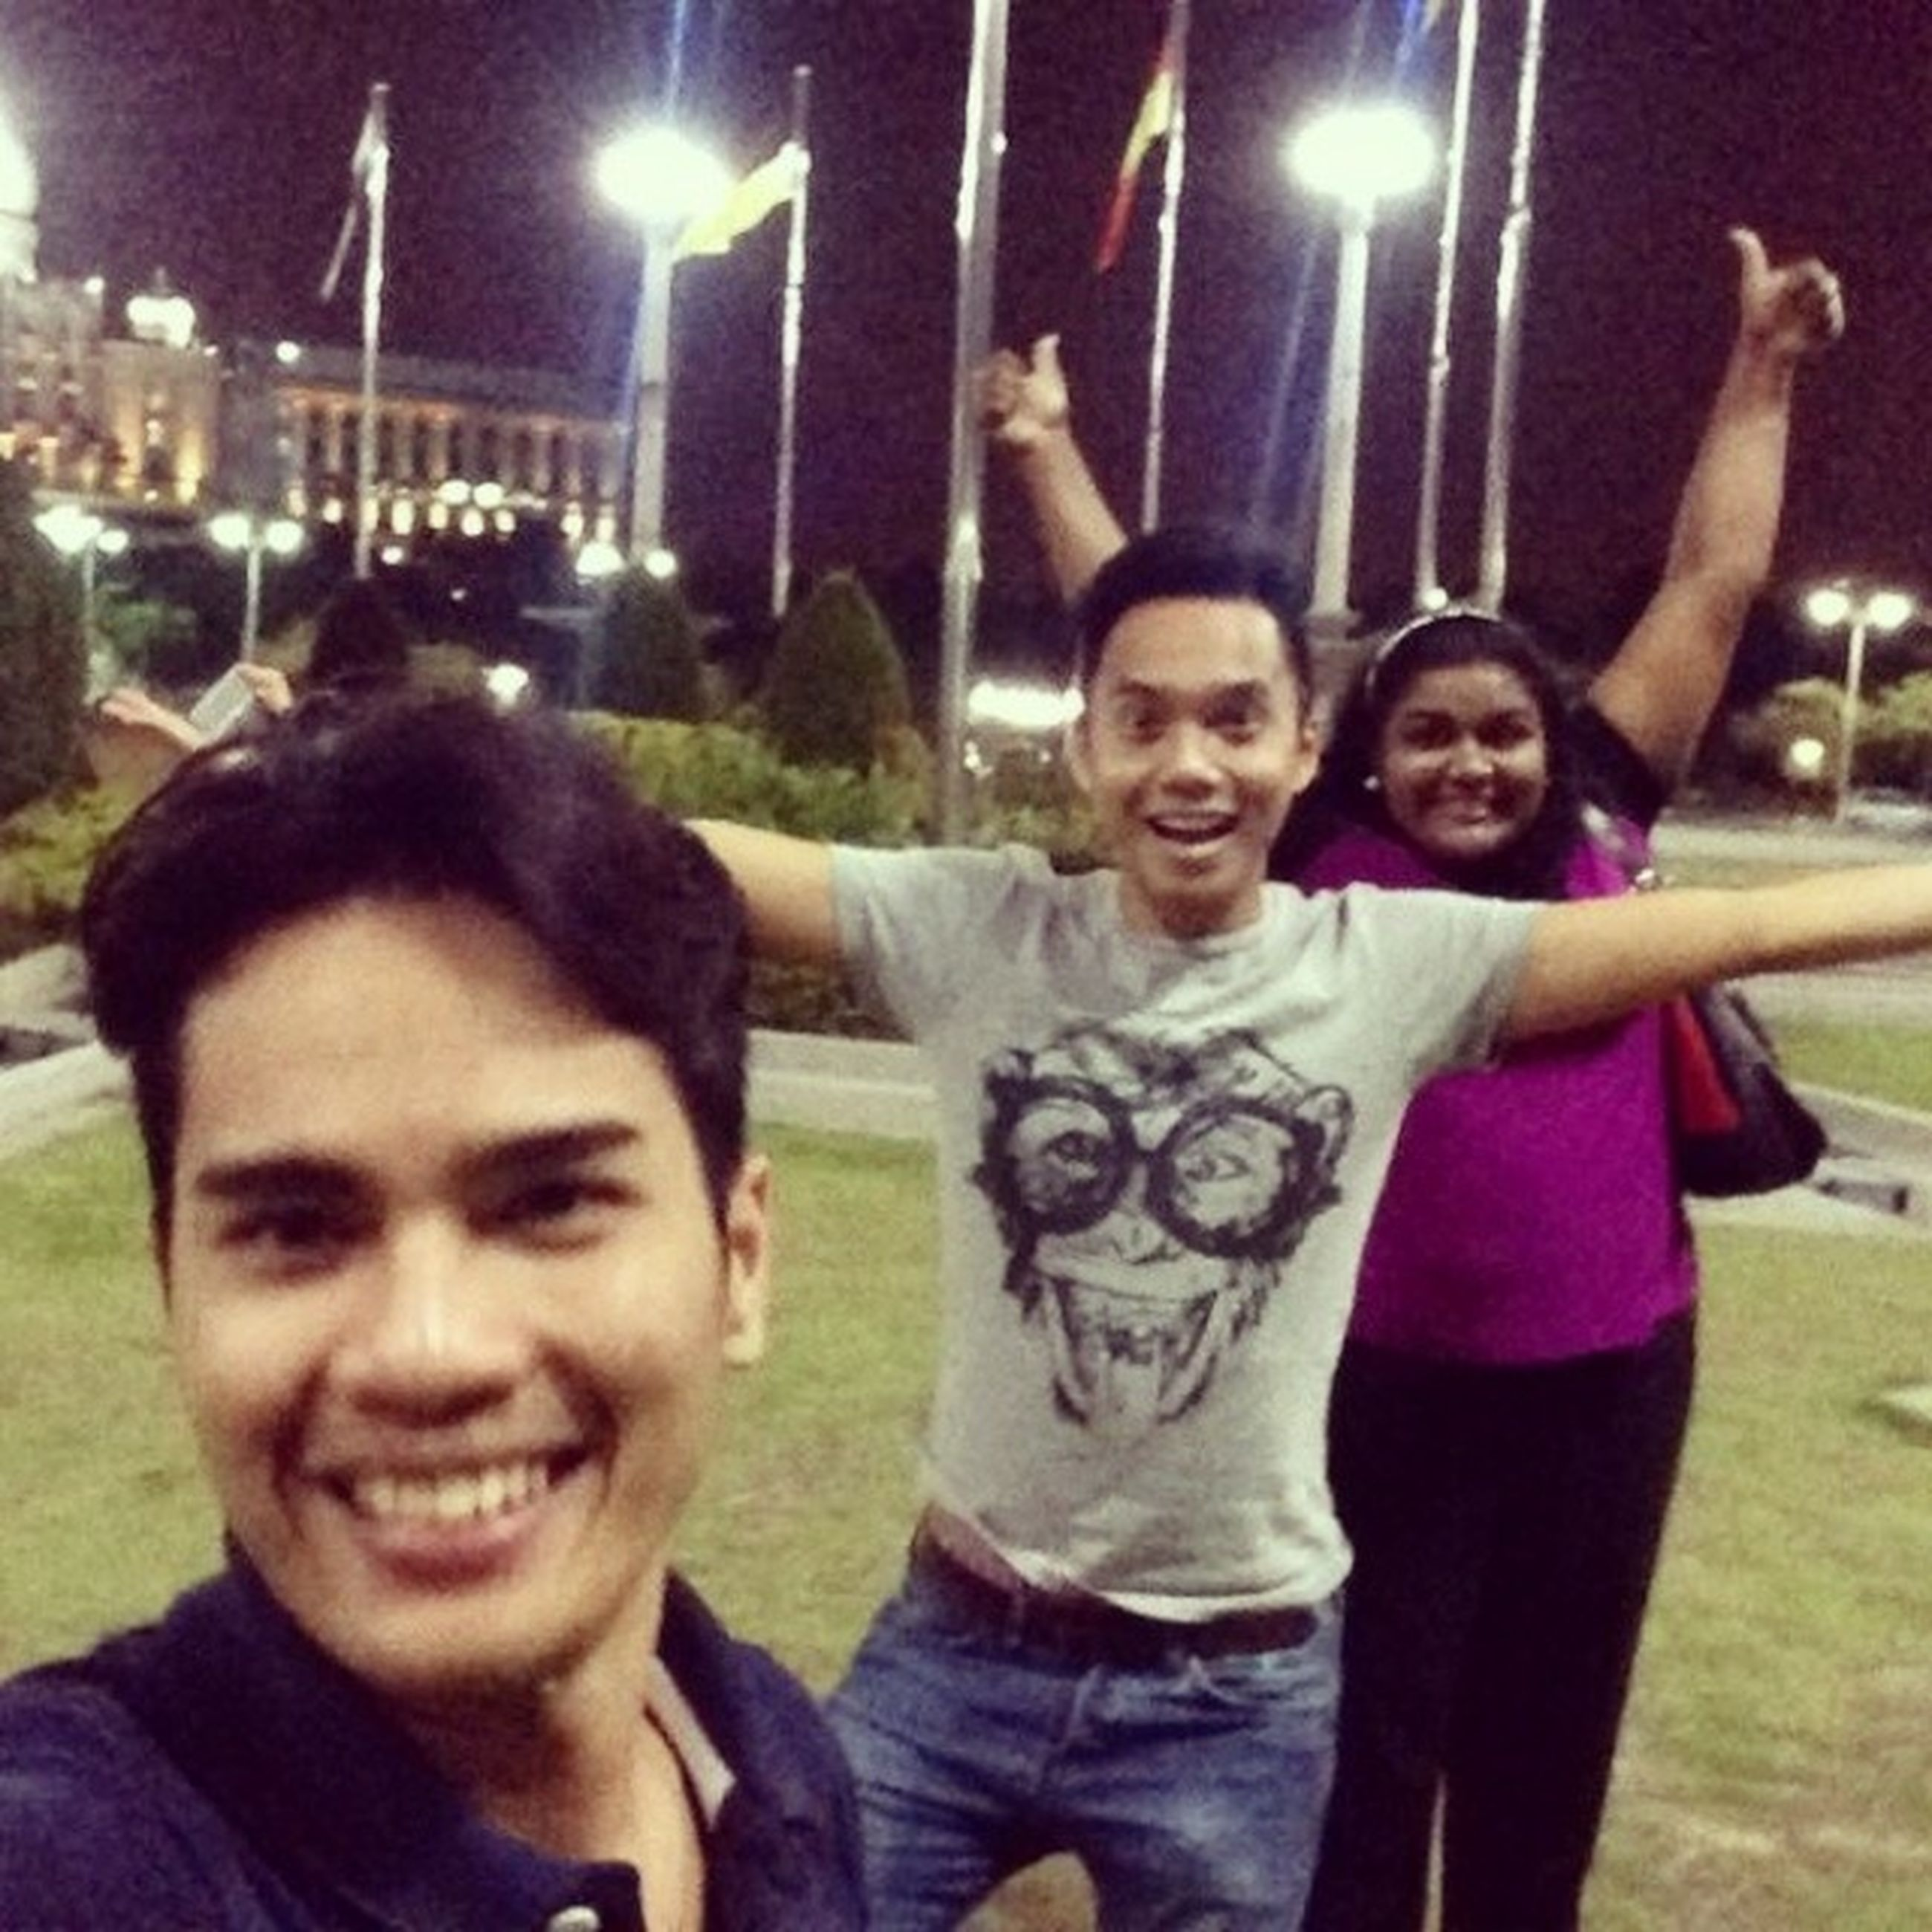 togetherness, lifestyles, bonding, leisure activity, happiness, person, love, friendship, casual clothing, smiling, portrait, front view, looking at camera, standing, fun, family, enjoyment, night